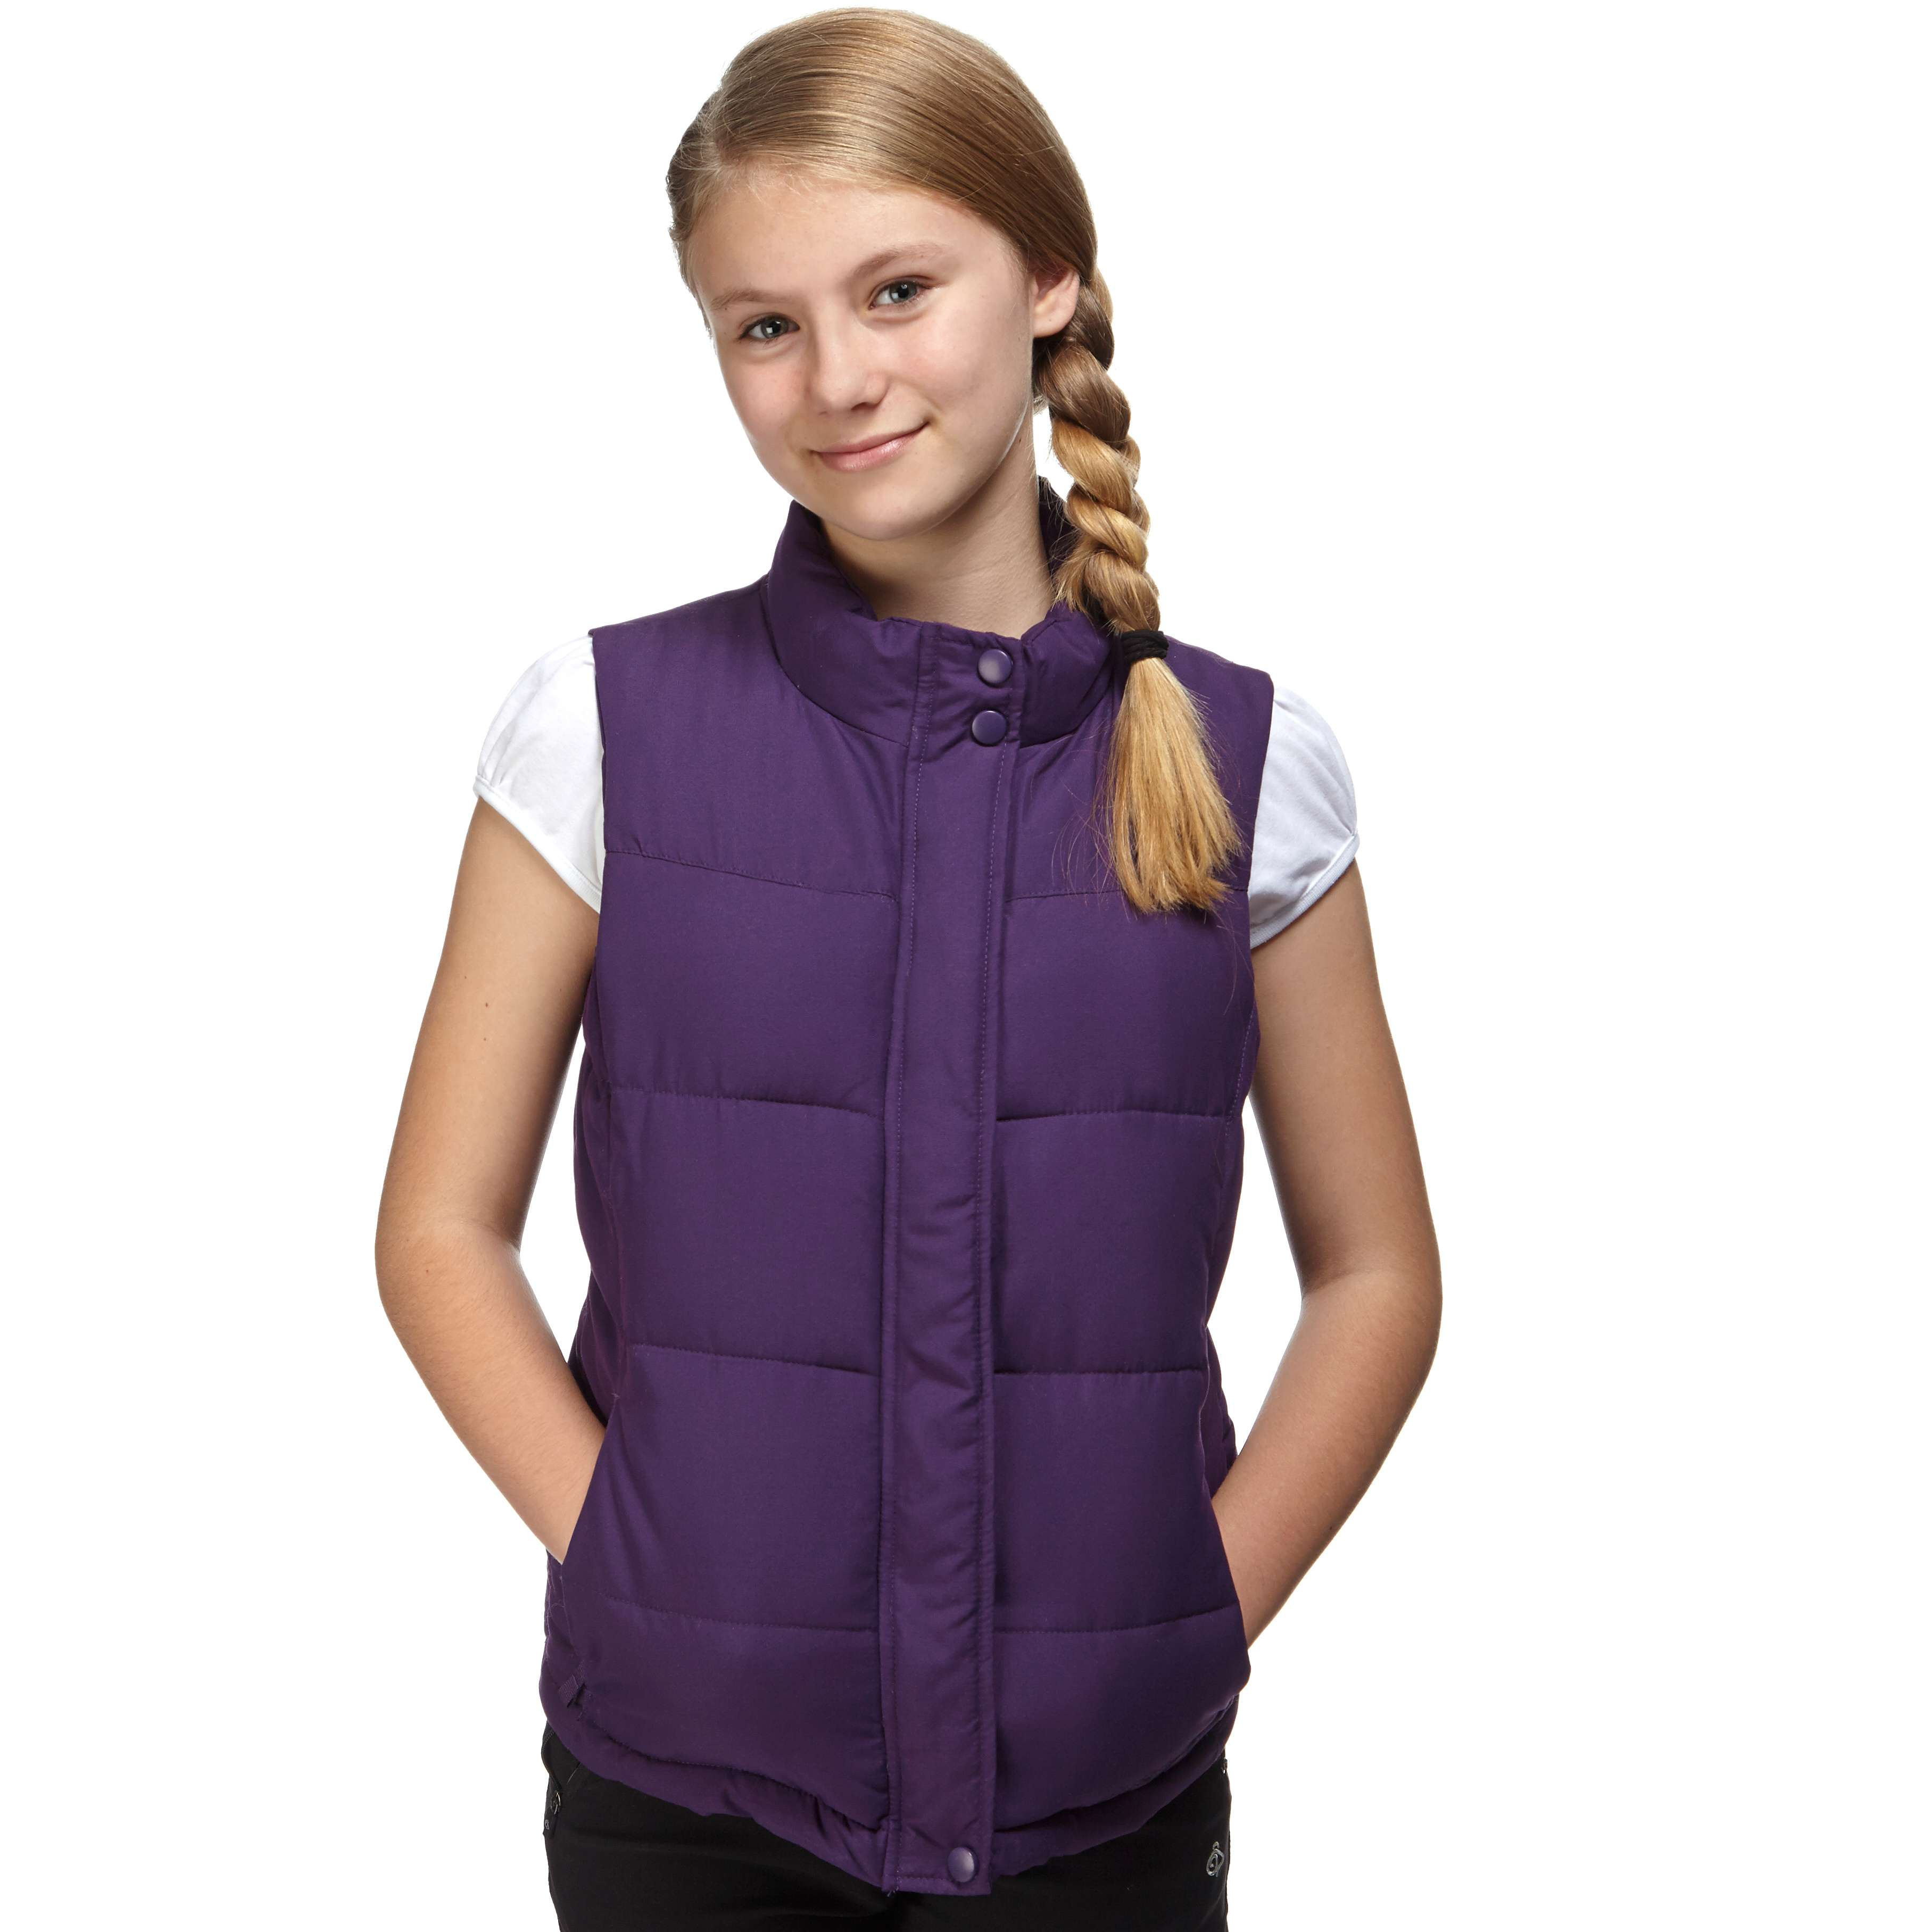 PETER STORM Girls' Everyday Insulated Gilet